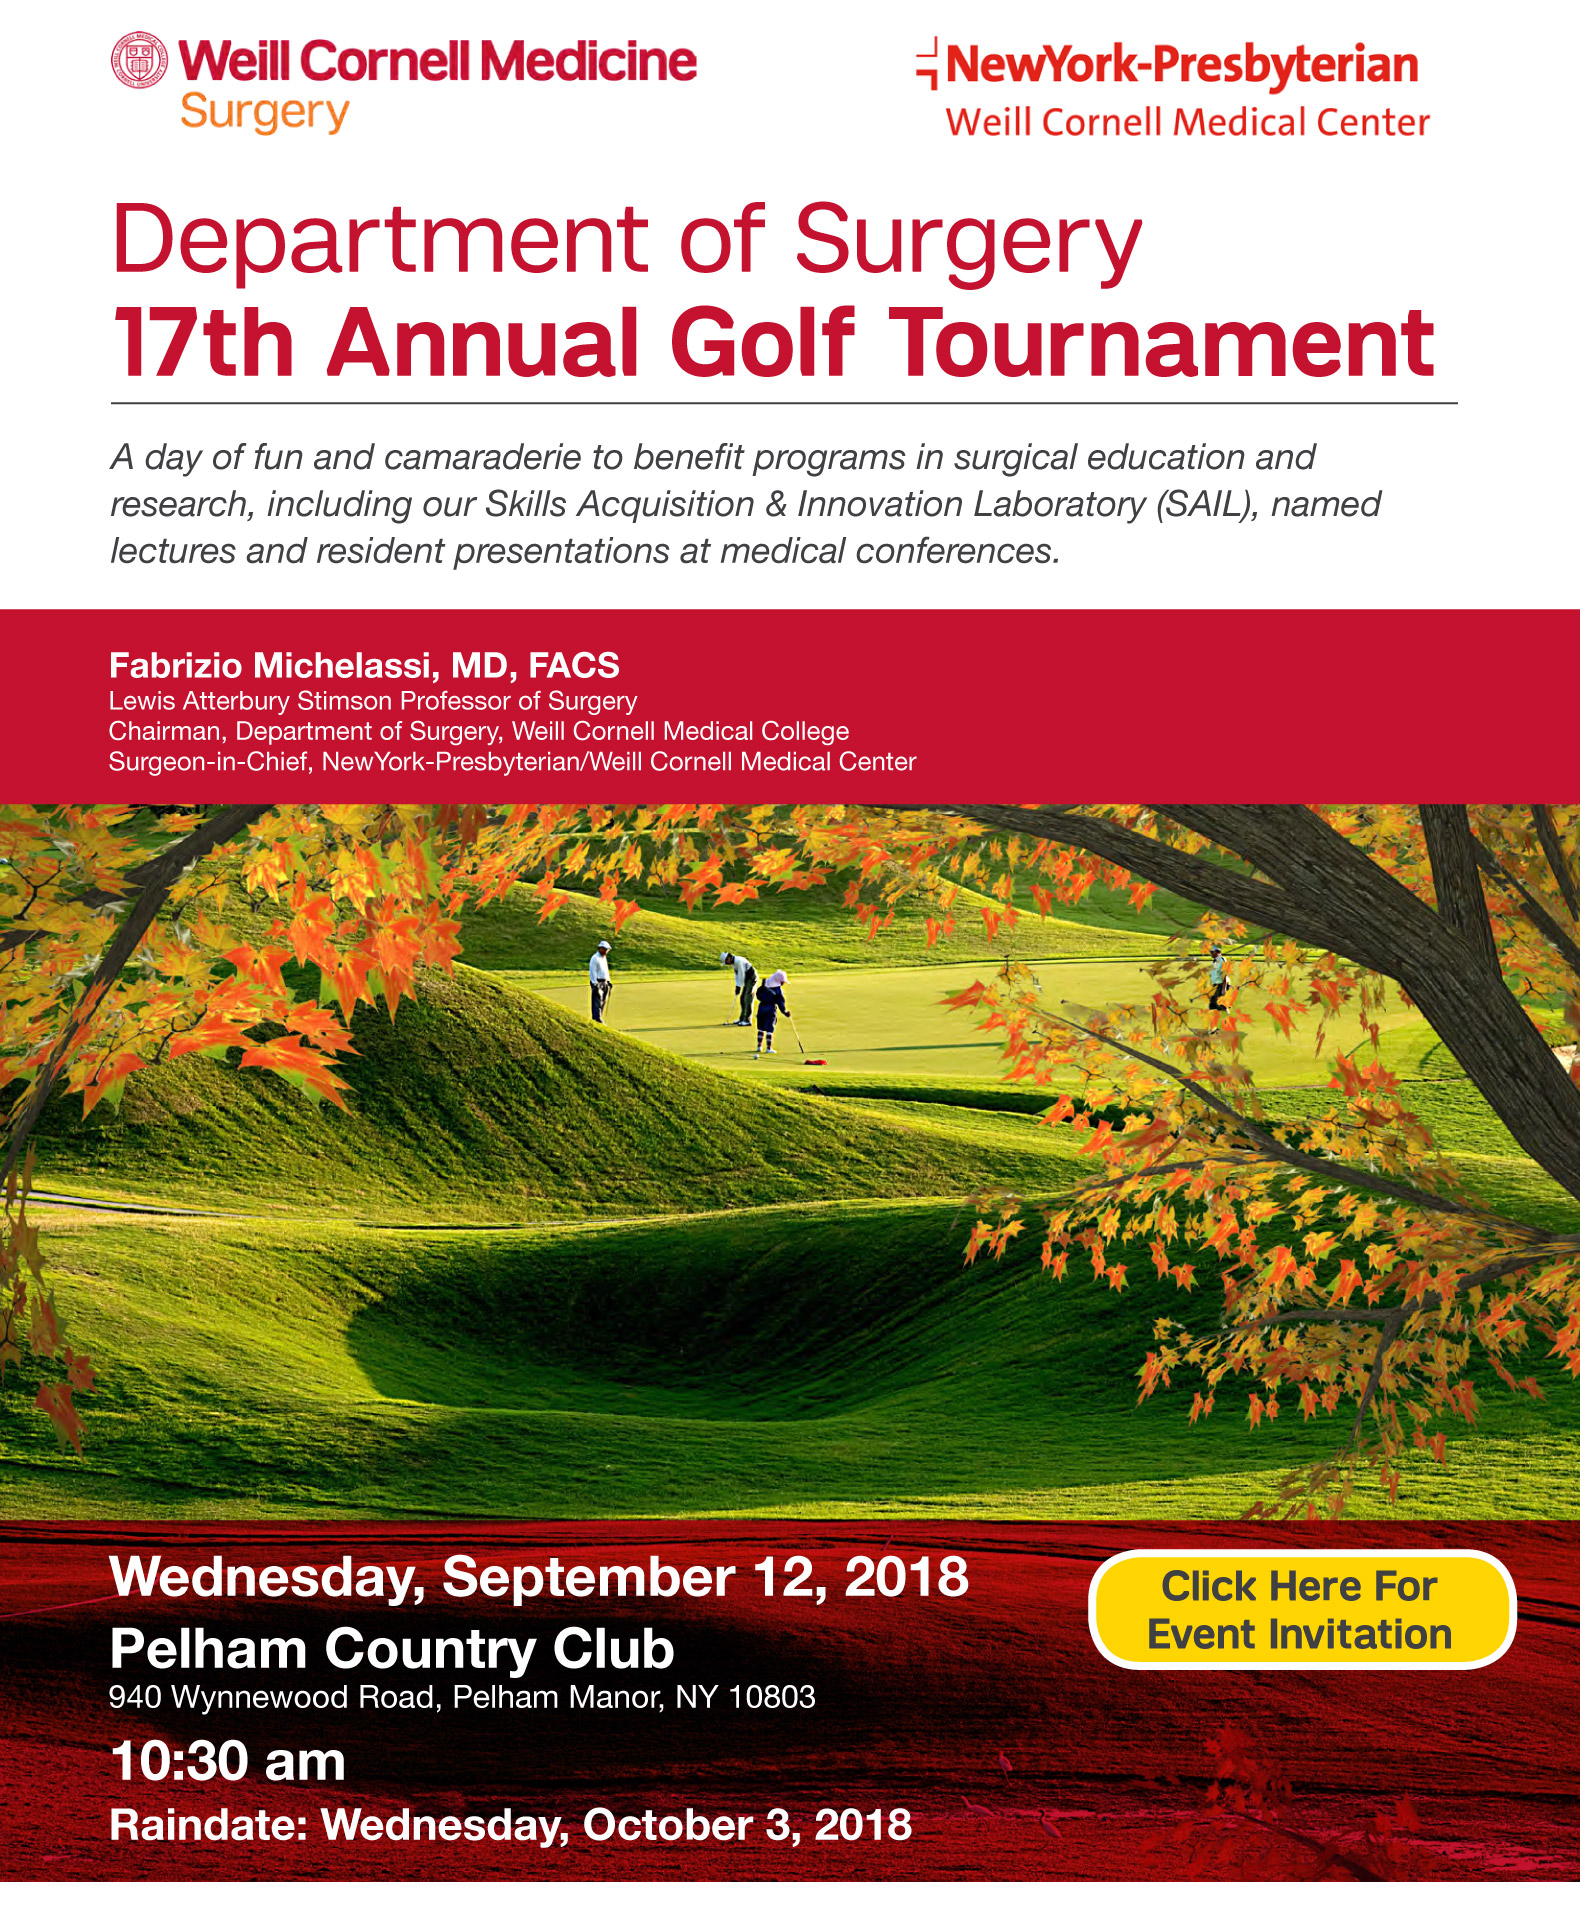 Join the Weill Cornell Department of Surgery on Wednesday, September 12, 2018 for our 17th Annual Golf Tournament